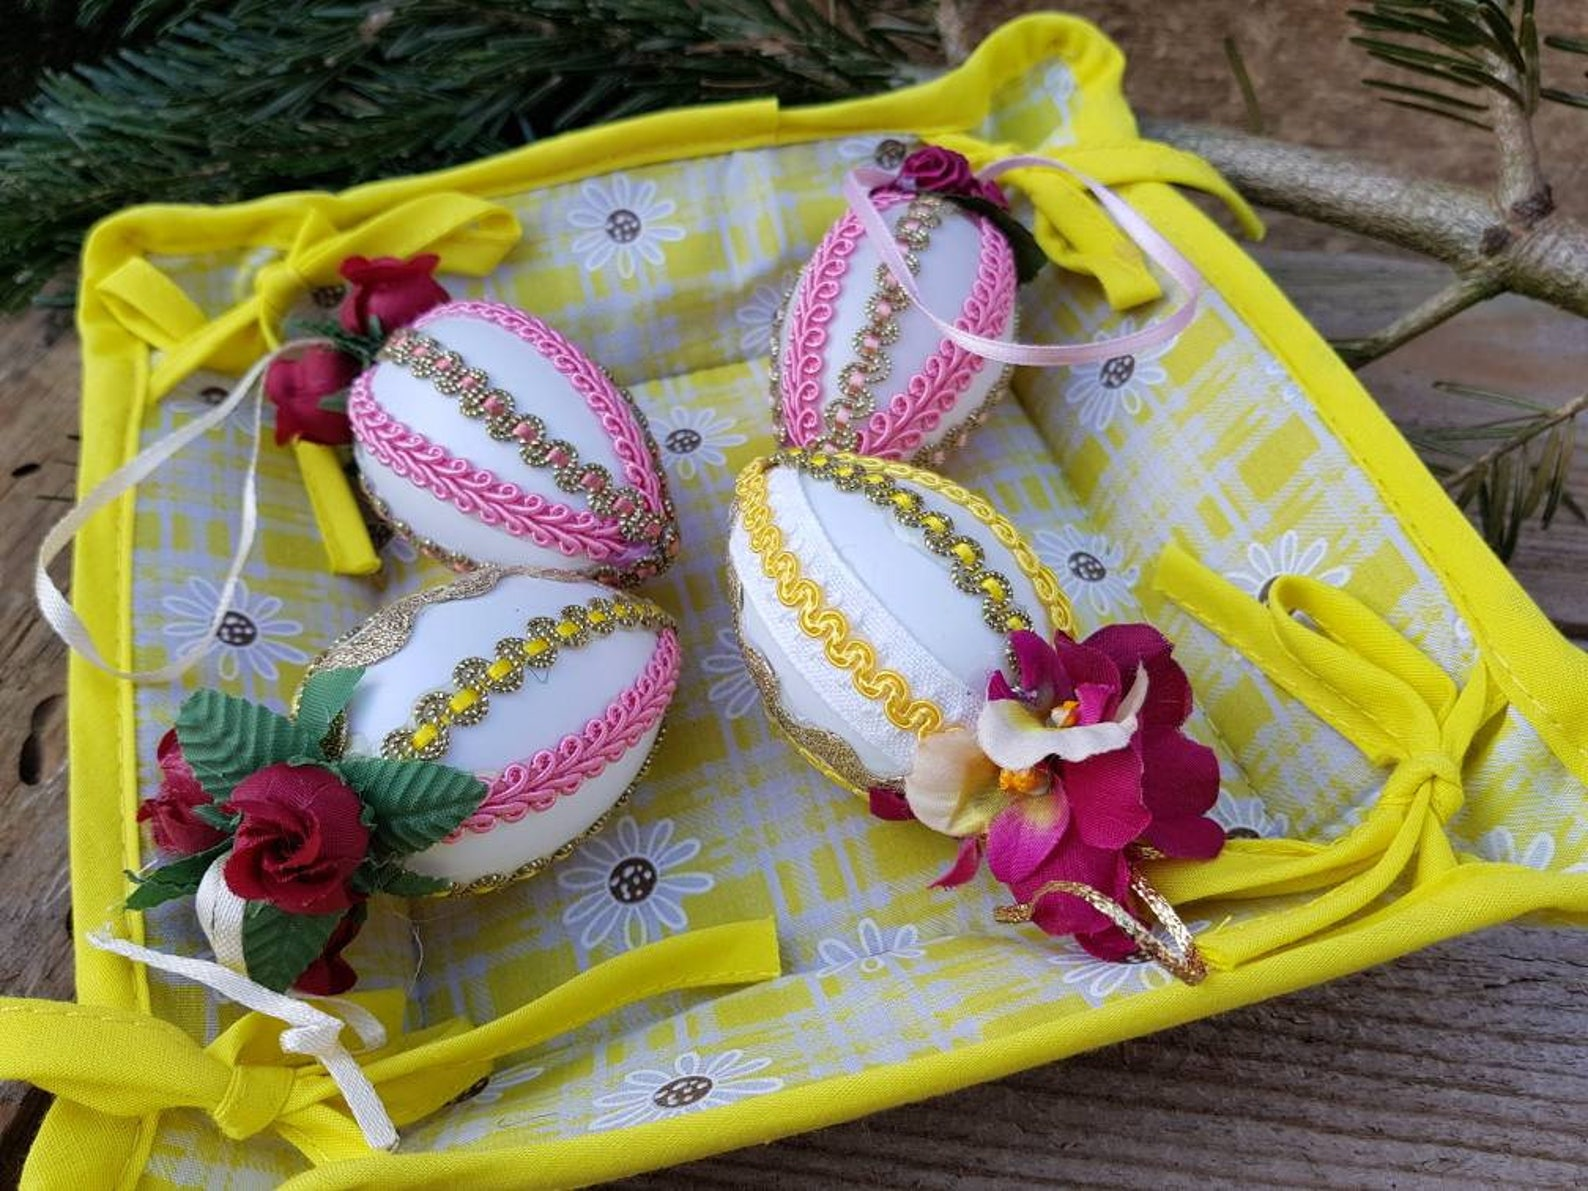 Vintage German Easter Eggs Handmade Mid Century Lot of 4 Ornaments Easter Tree